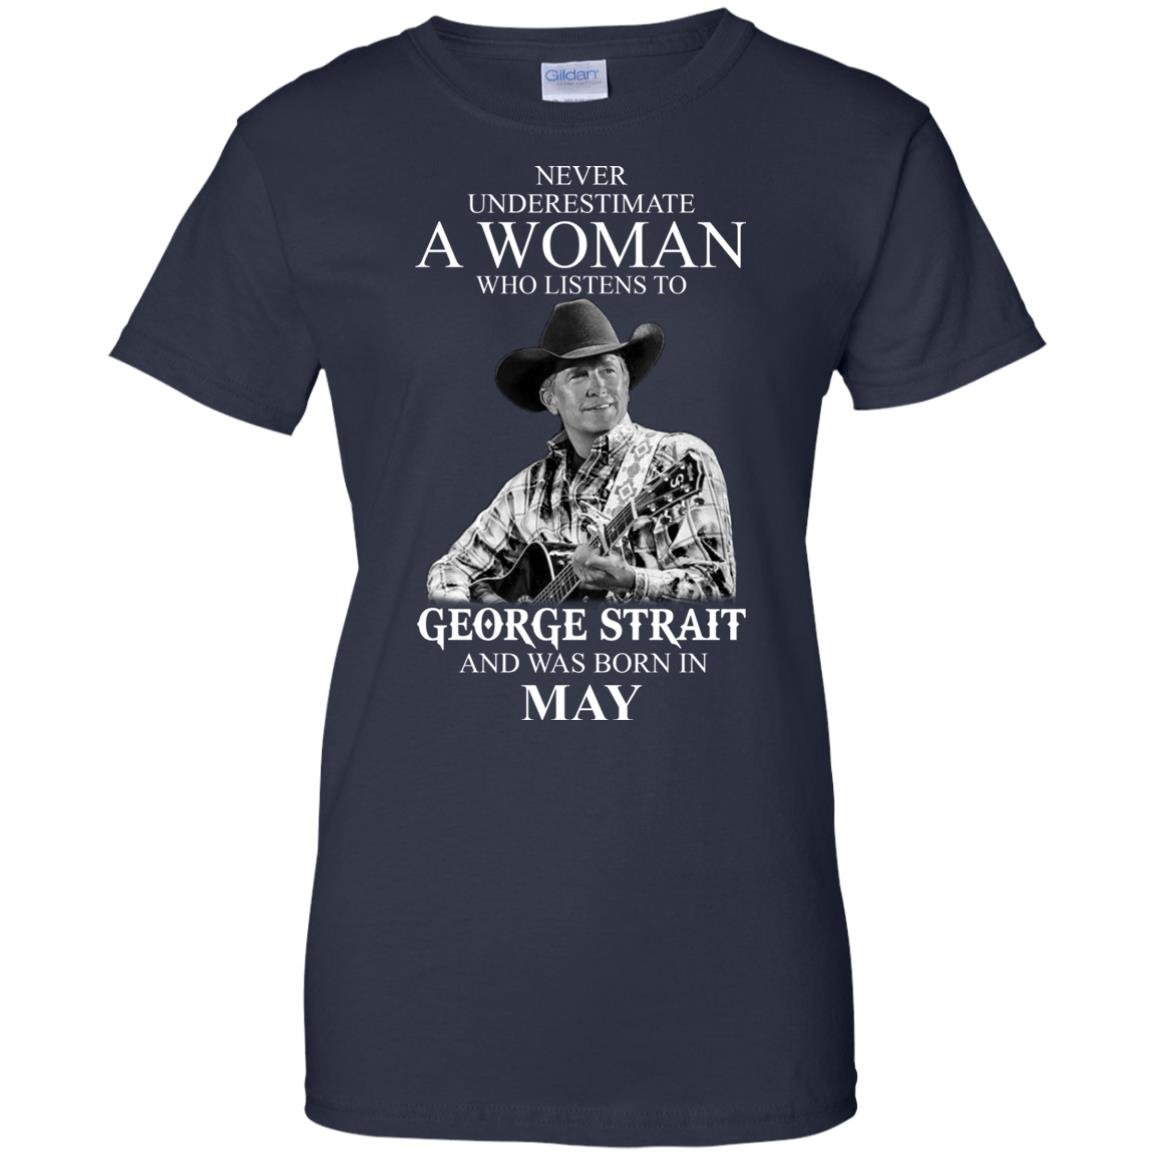 image 421 - Never Underestimate A Woman Who Listens To George Strait And Was Born In May shirt